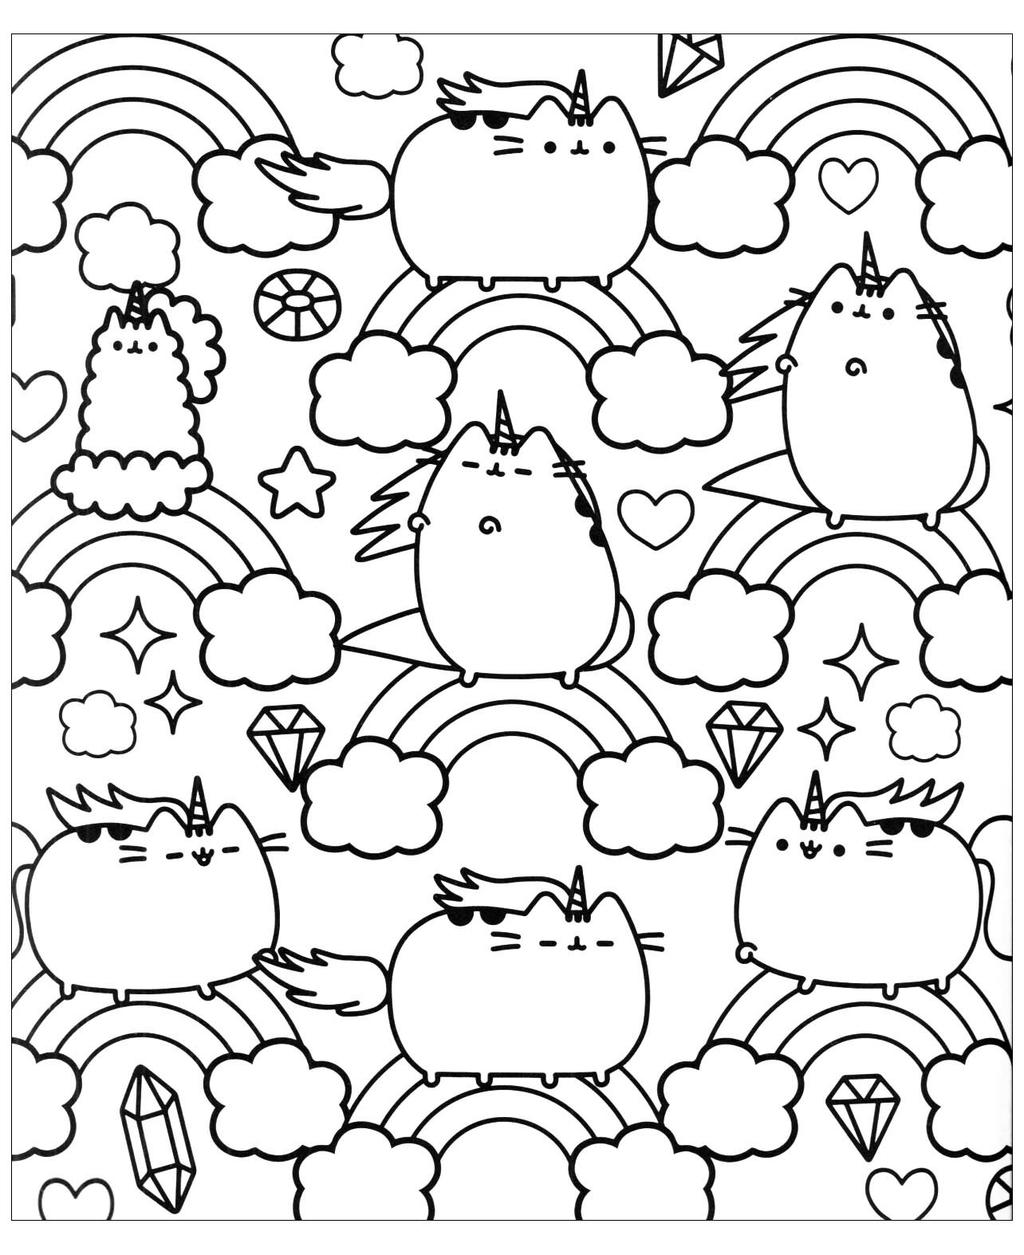 Free Pusheen Cat Coloring Pages 131 Images printable